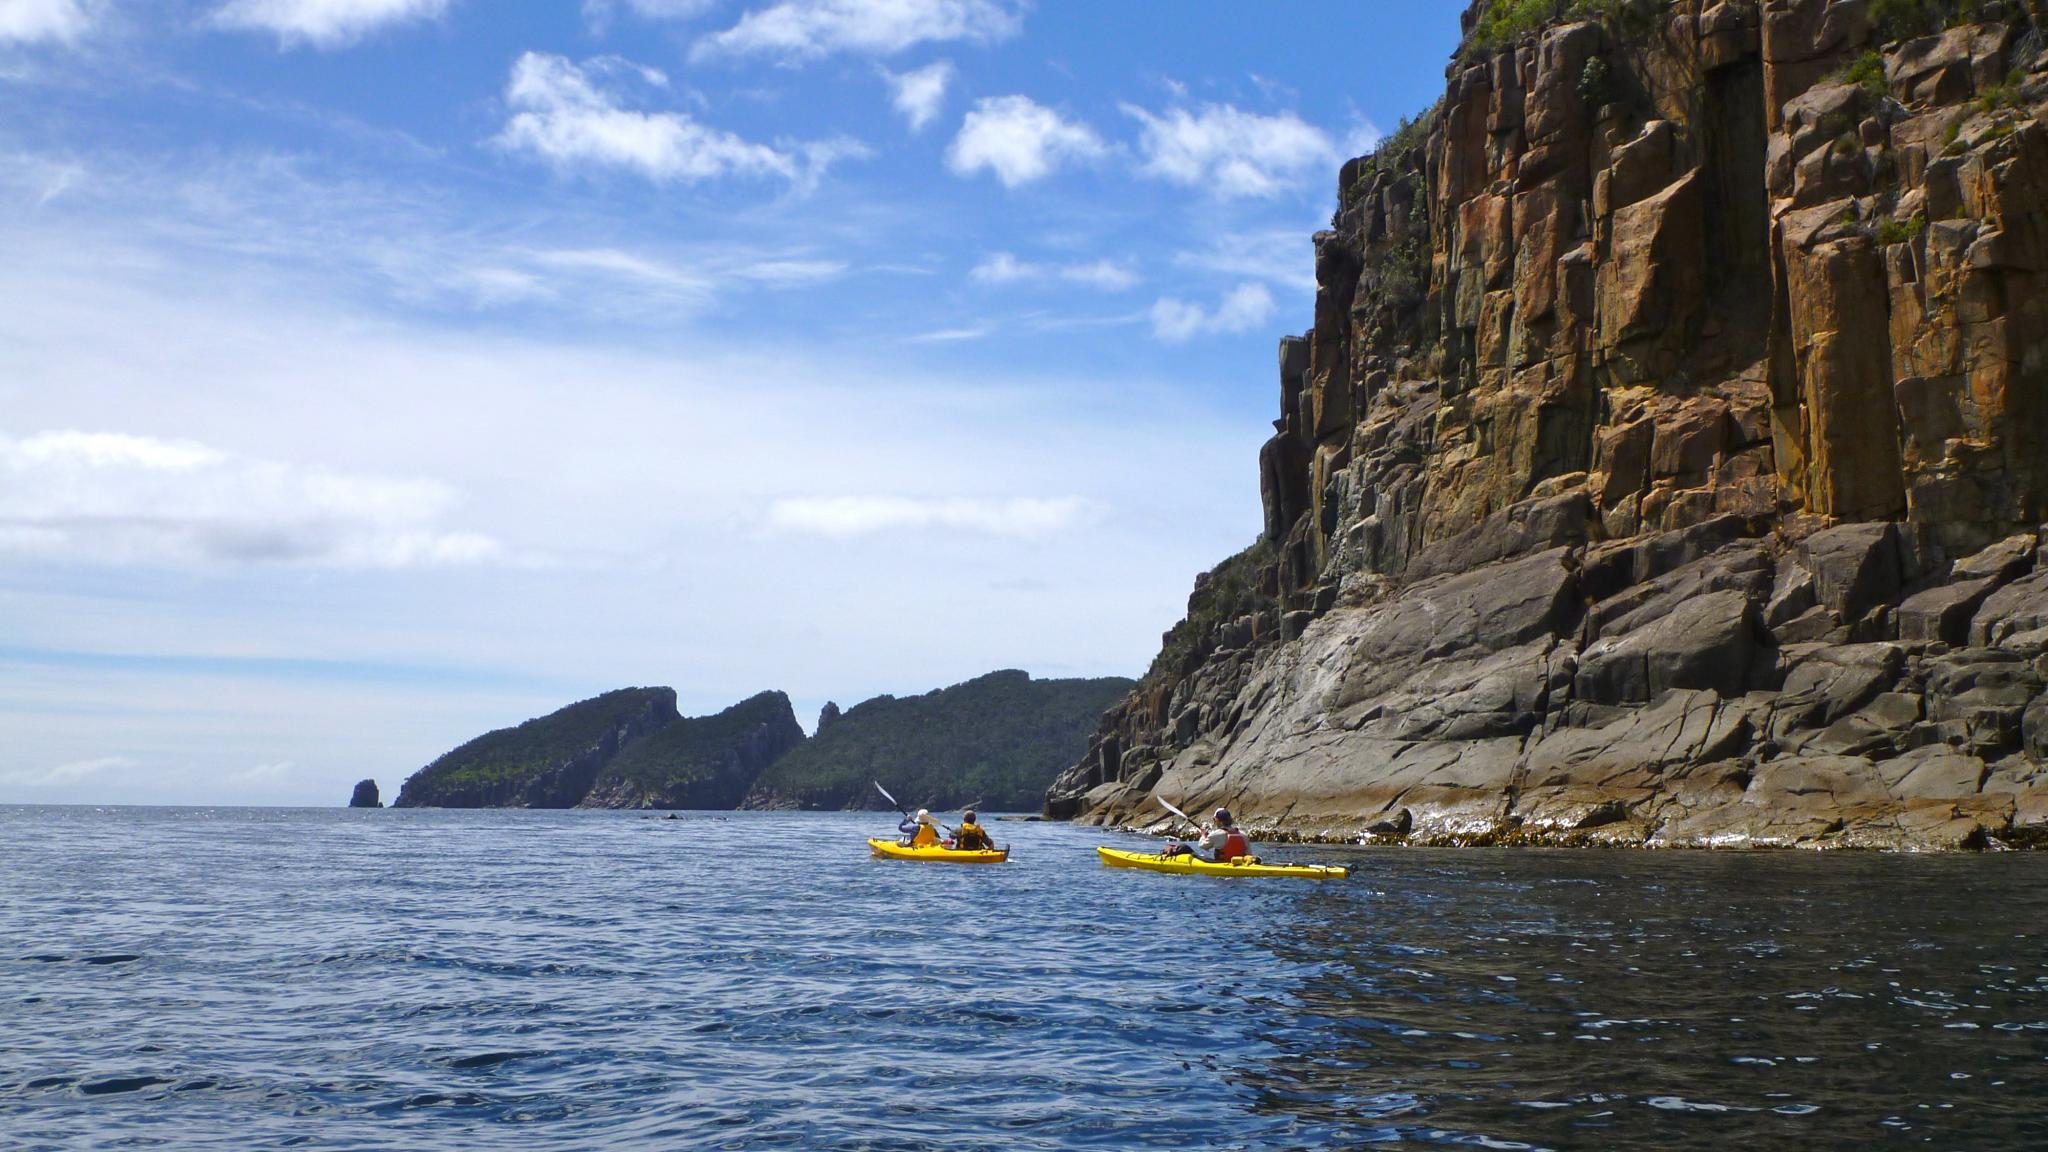 Roaring 40s Kayaking - Day tour kayaking along cliffs near Port Arthur, Tasmania